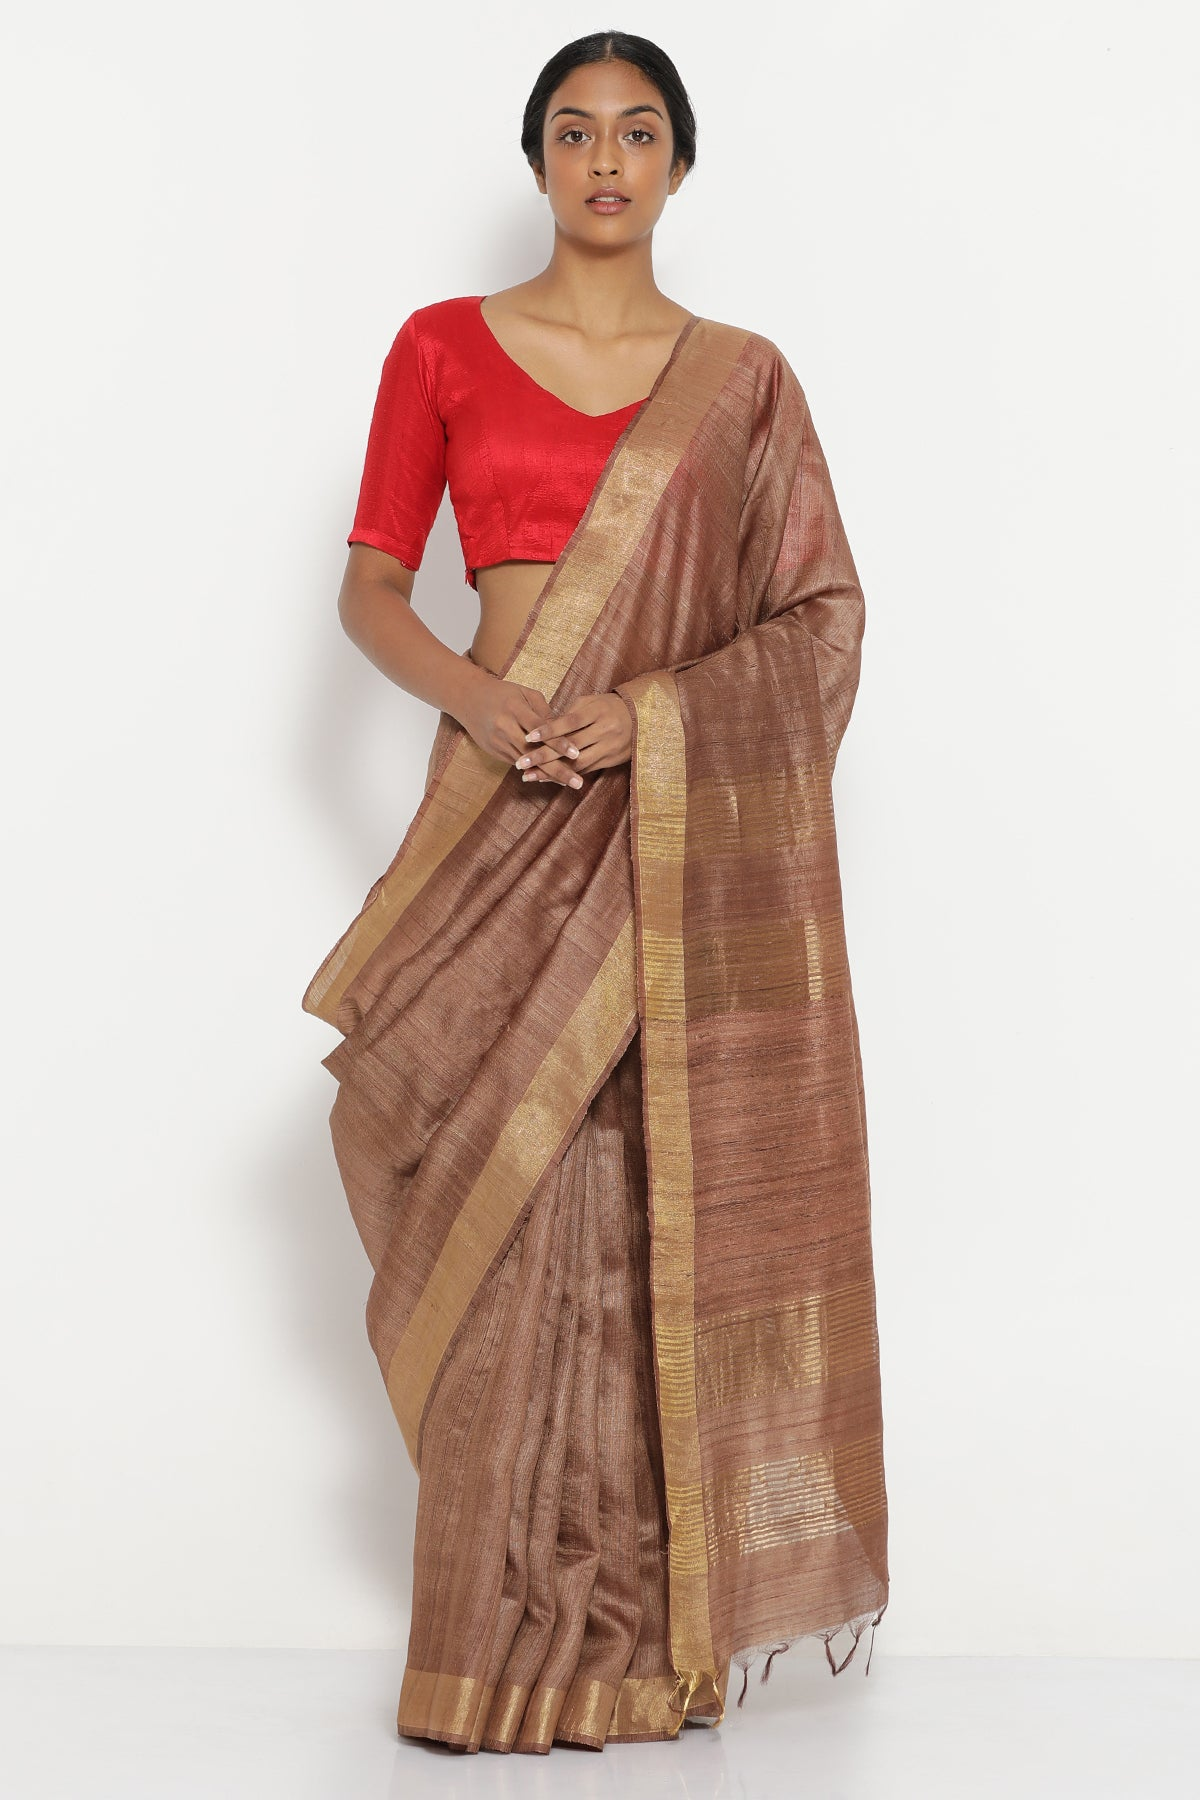 e1d2de570a Chestnut Brown Handloom Pure Tussar Silk Saree with Gold Zari Border ...